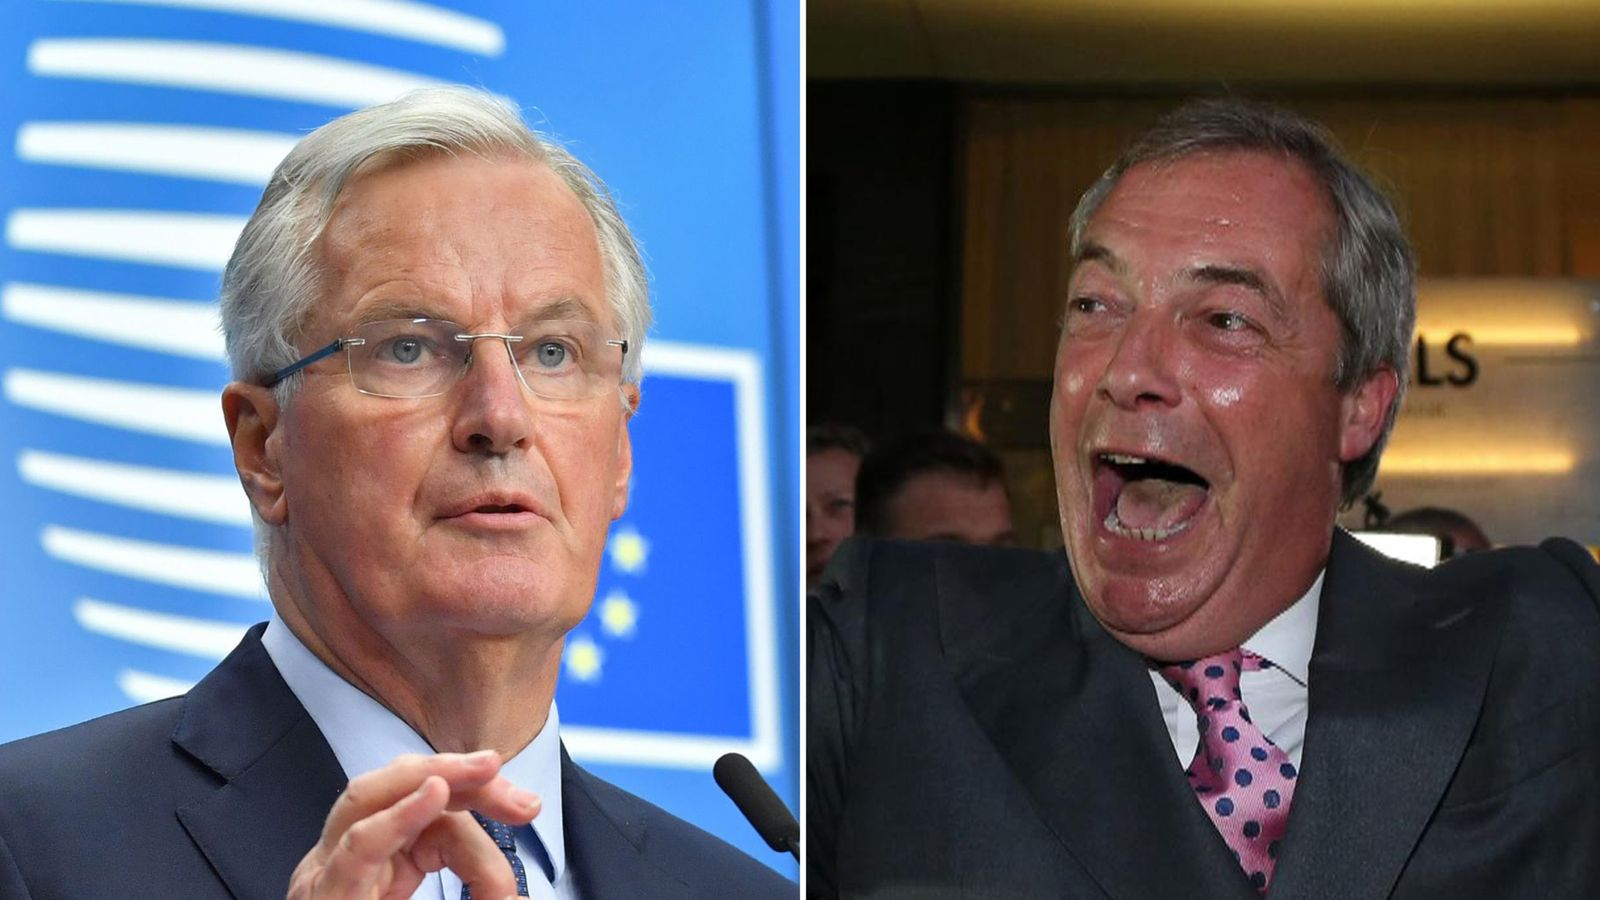 EU Brexit negotiator Michel Barnier warns of 'a Farage in every country'